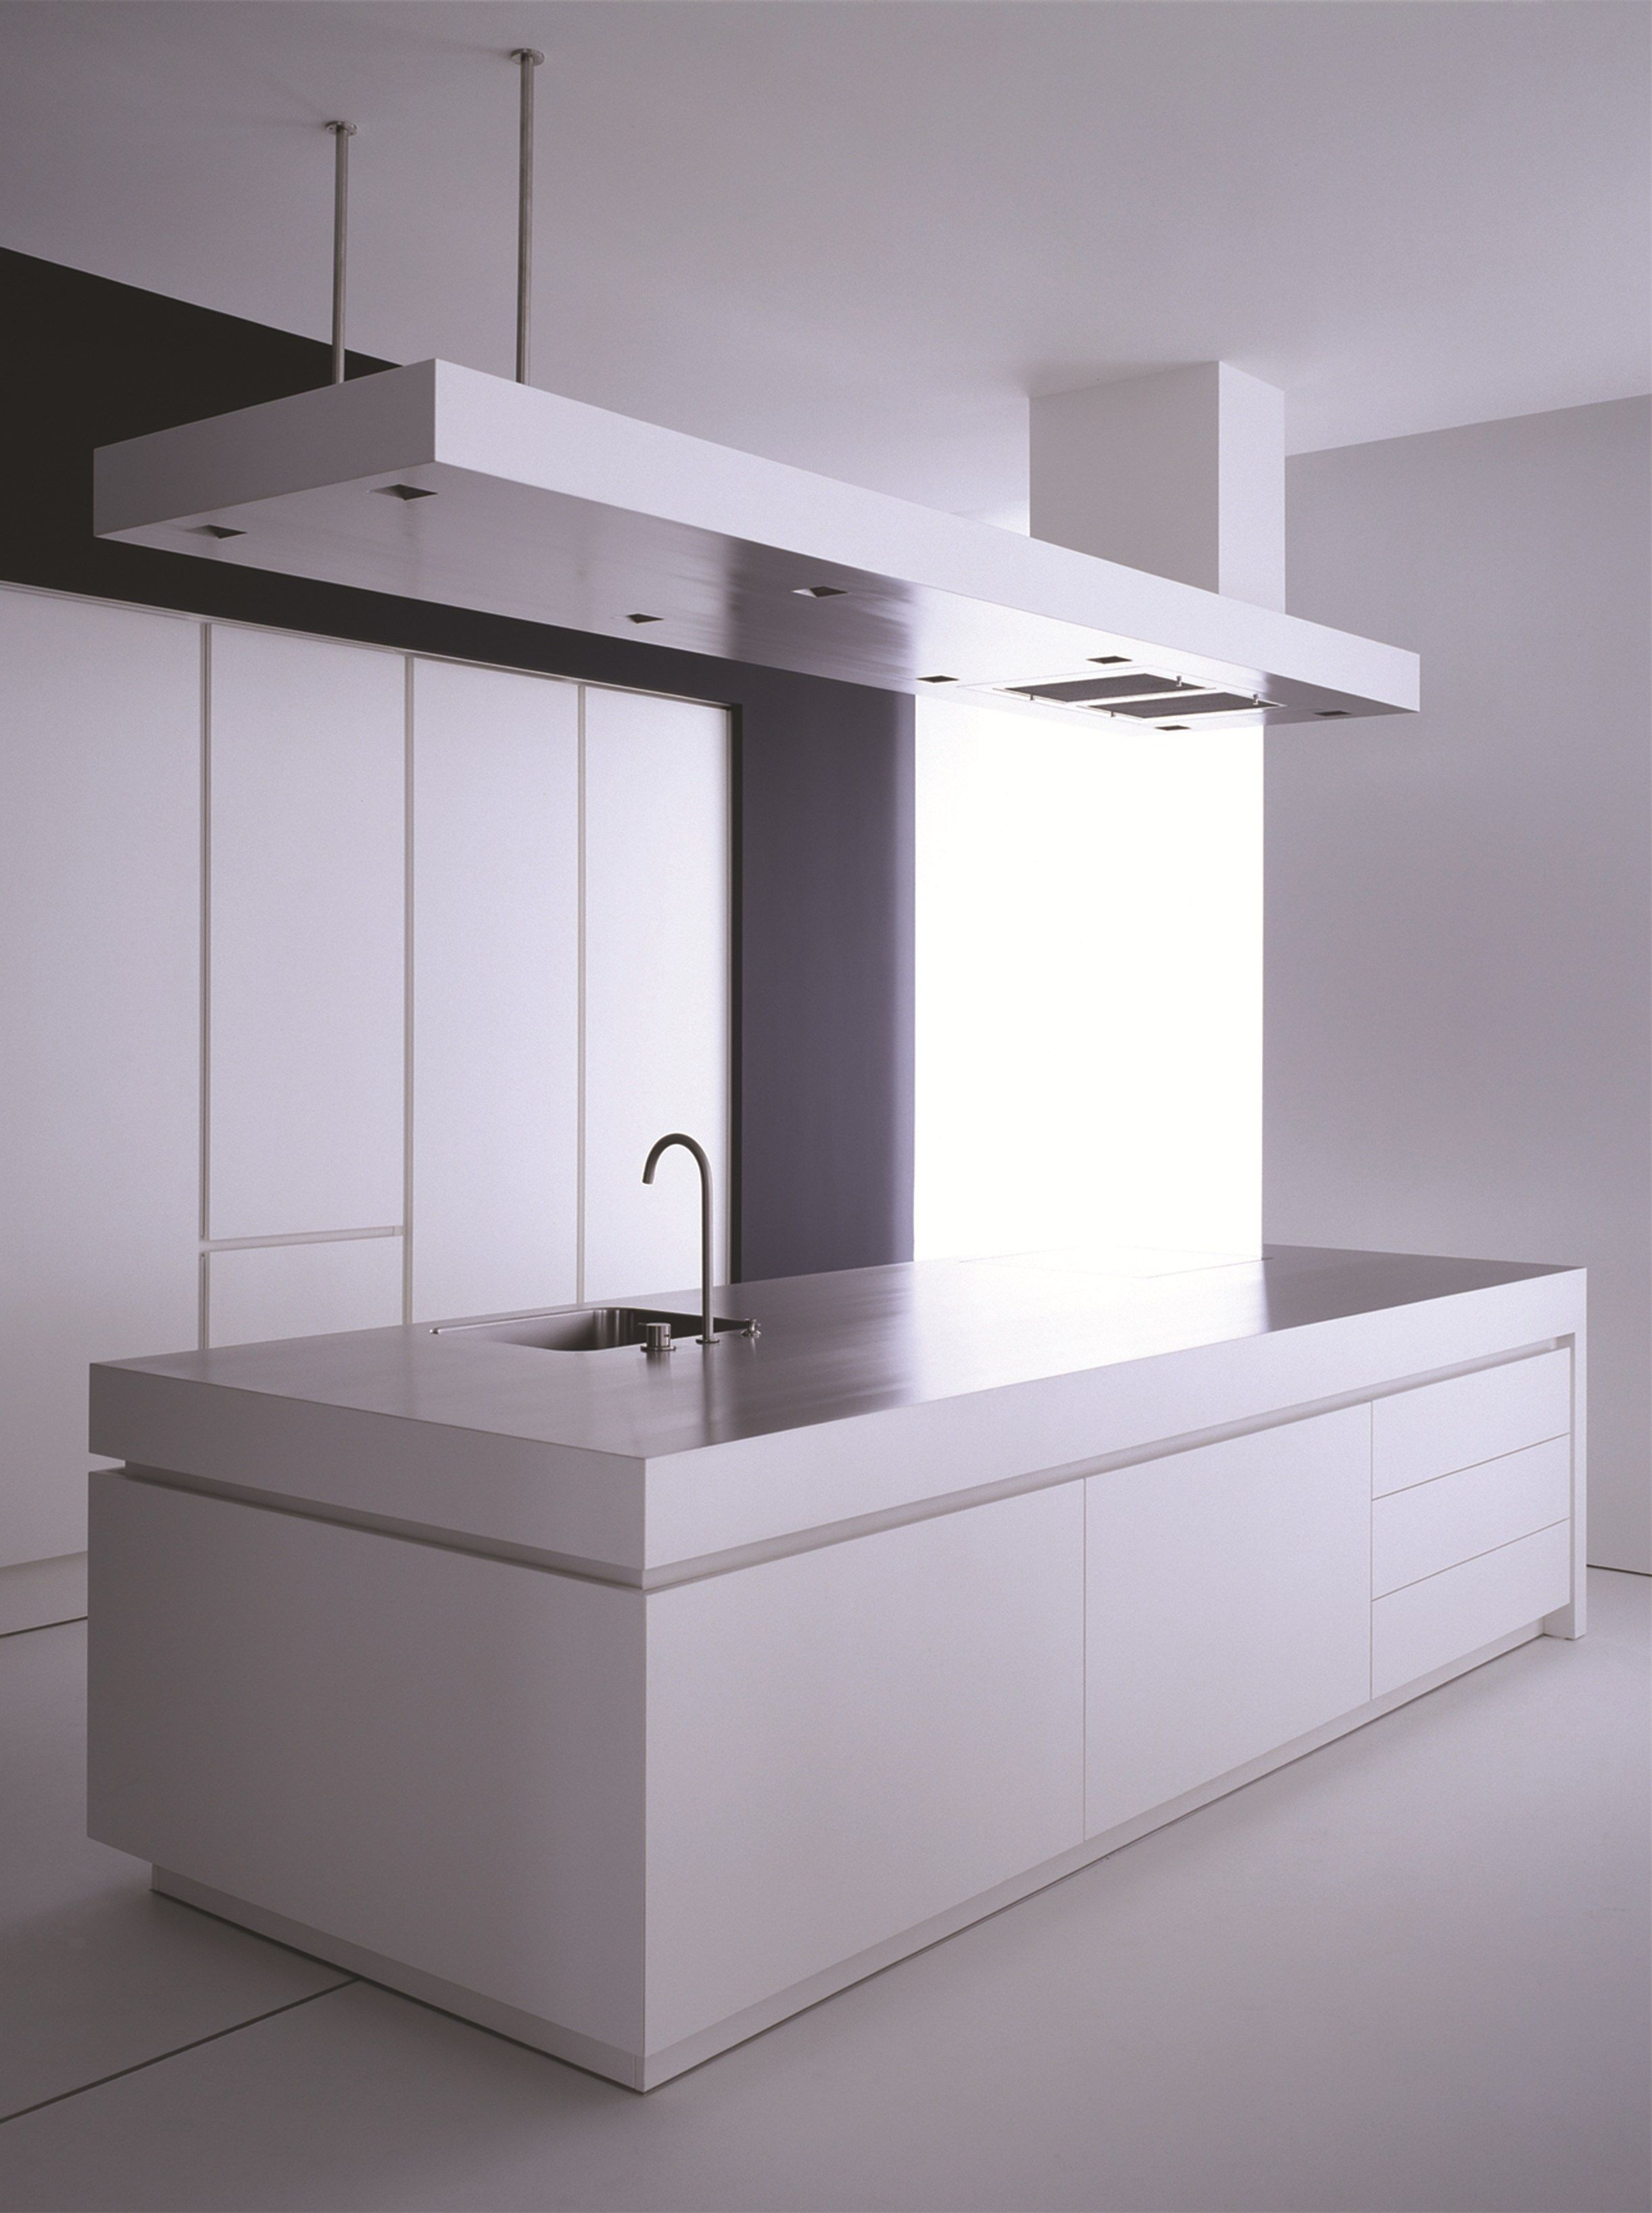 Stainless steel kitchen with island K13